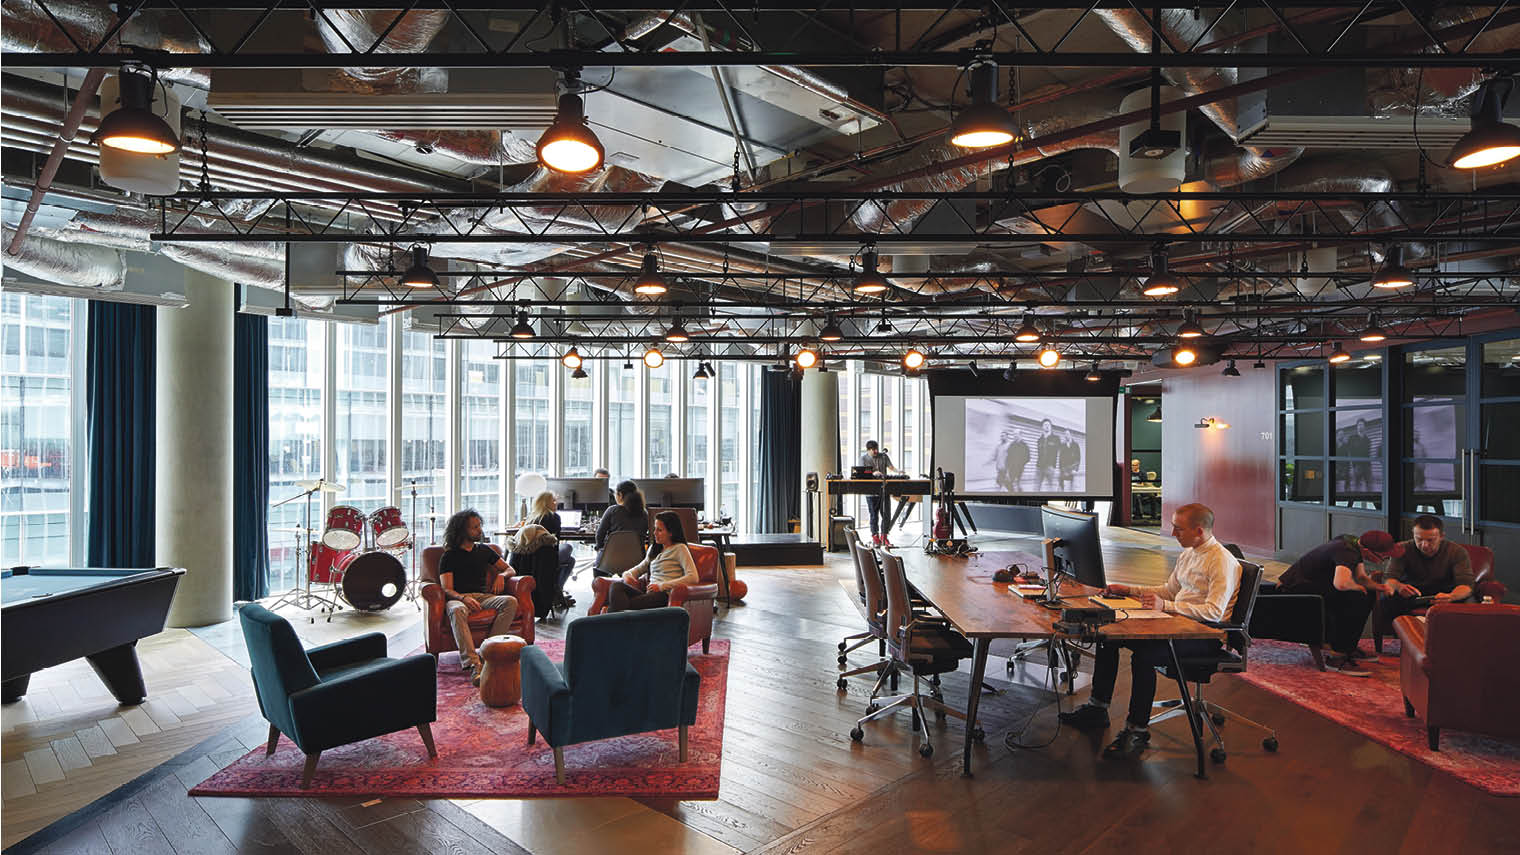 The impact of open plan offices on leadership raconteur - Interior design work environment ...